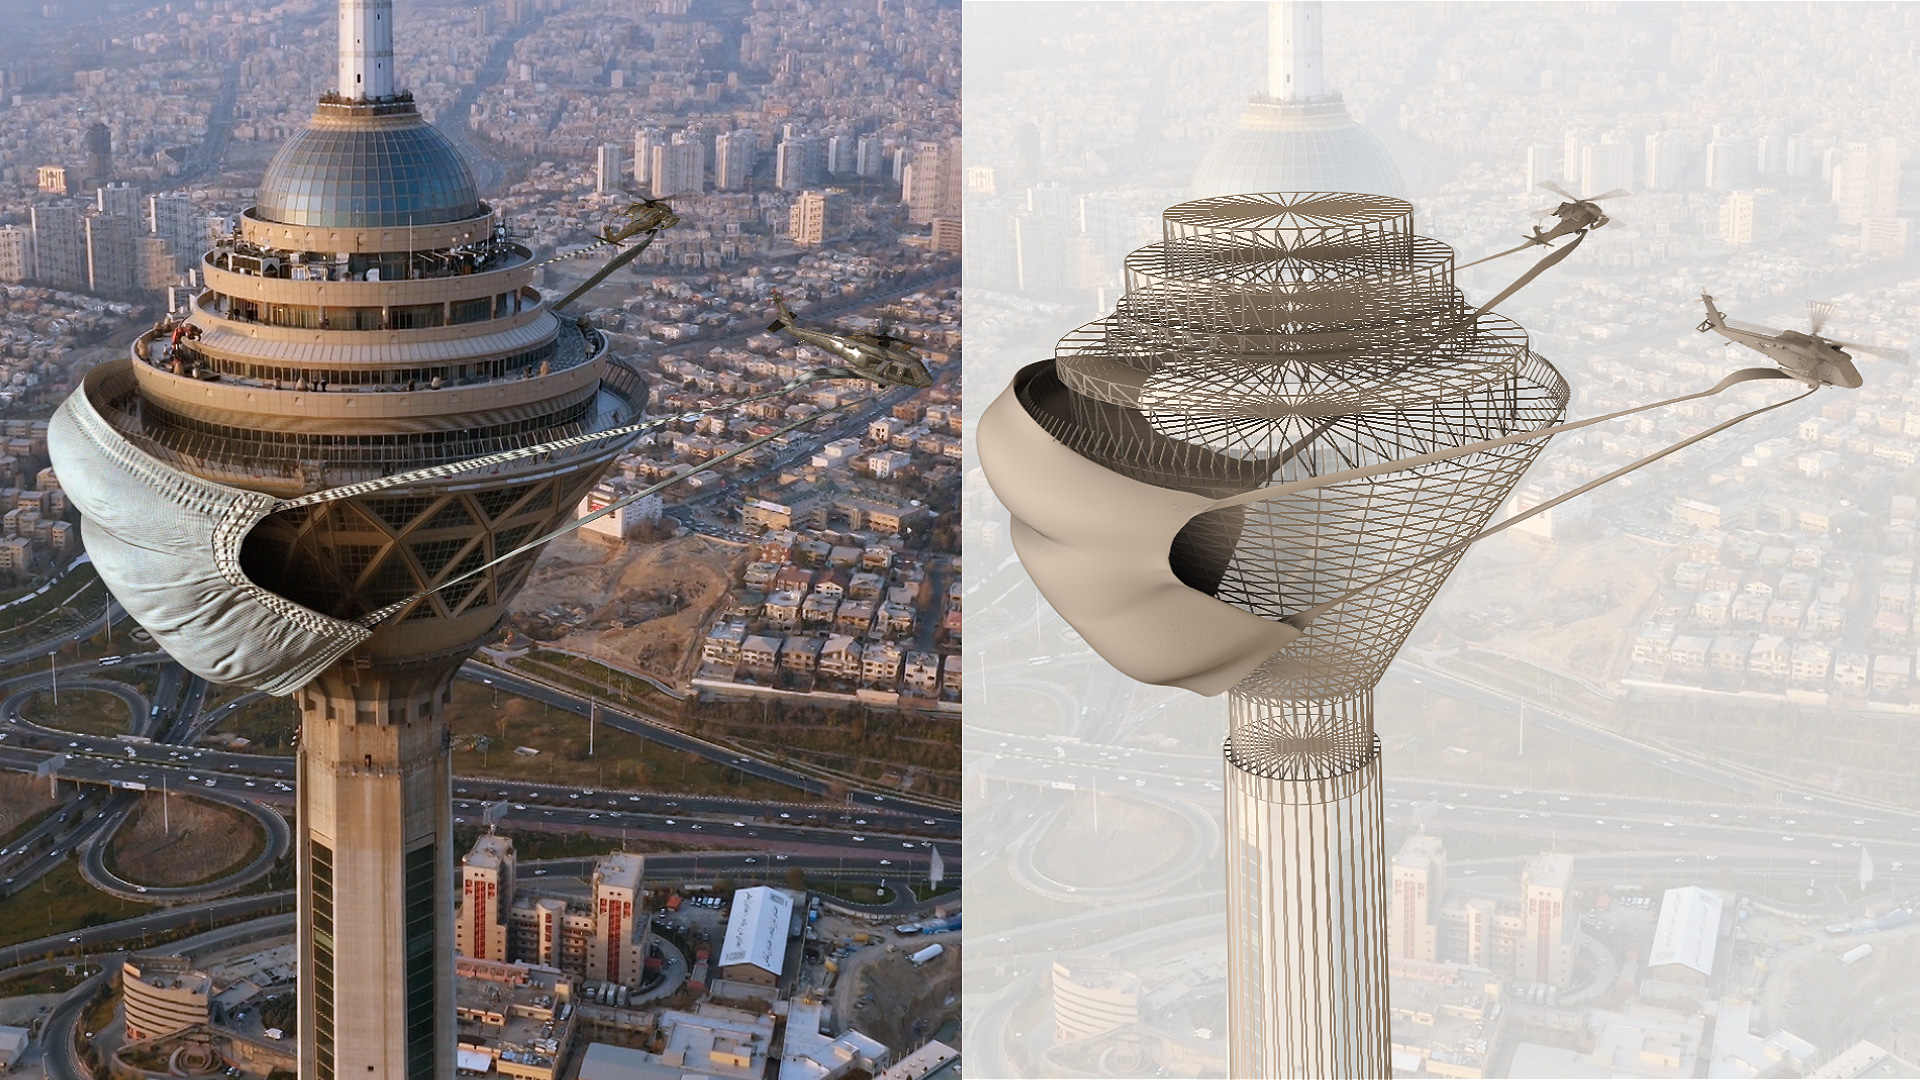 Final computer graphics versus wireframe render of the Milad Tower with a face mask | VFX installation on COVID-19 | Hamid Ebrahimnia and Hadi Behrouz | STIRworld